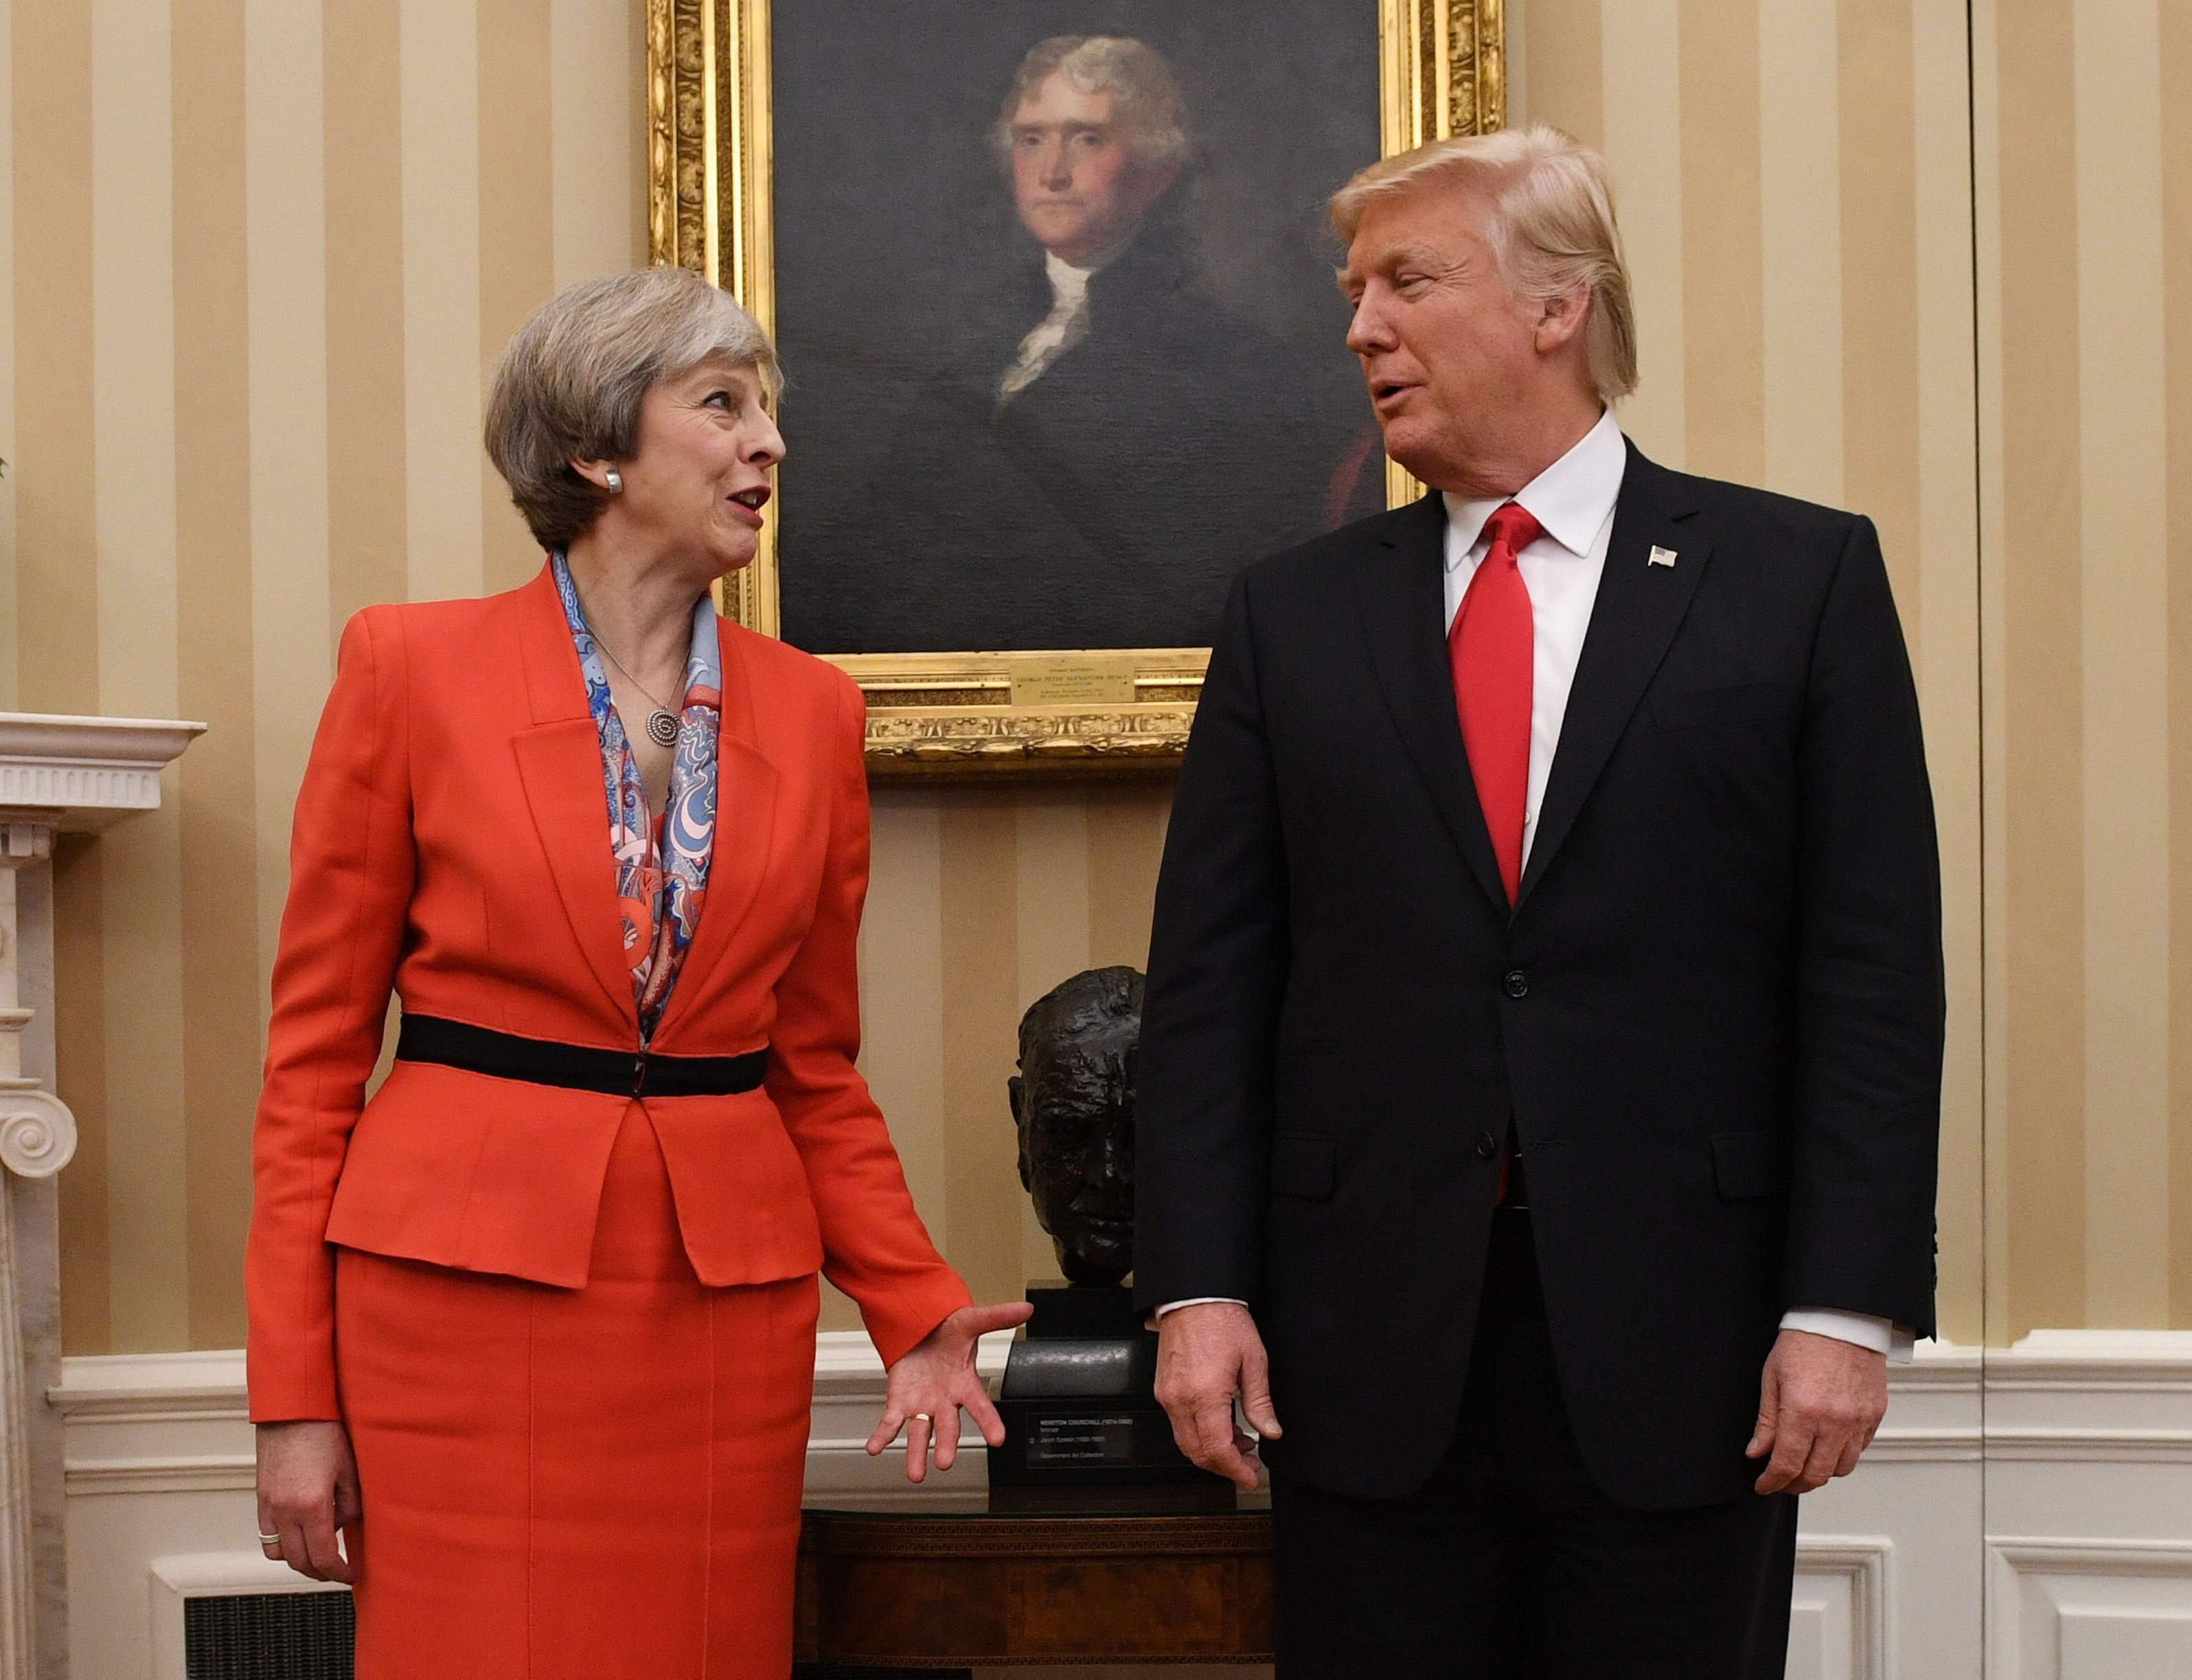 Trumps UK state visit may be downgraded to working trip